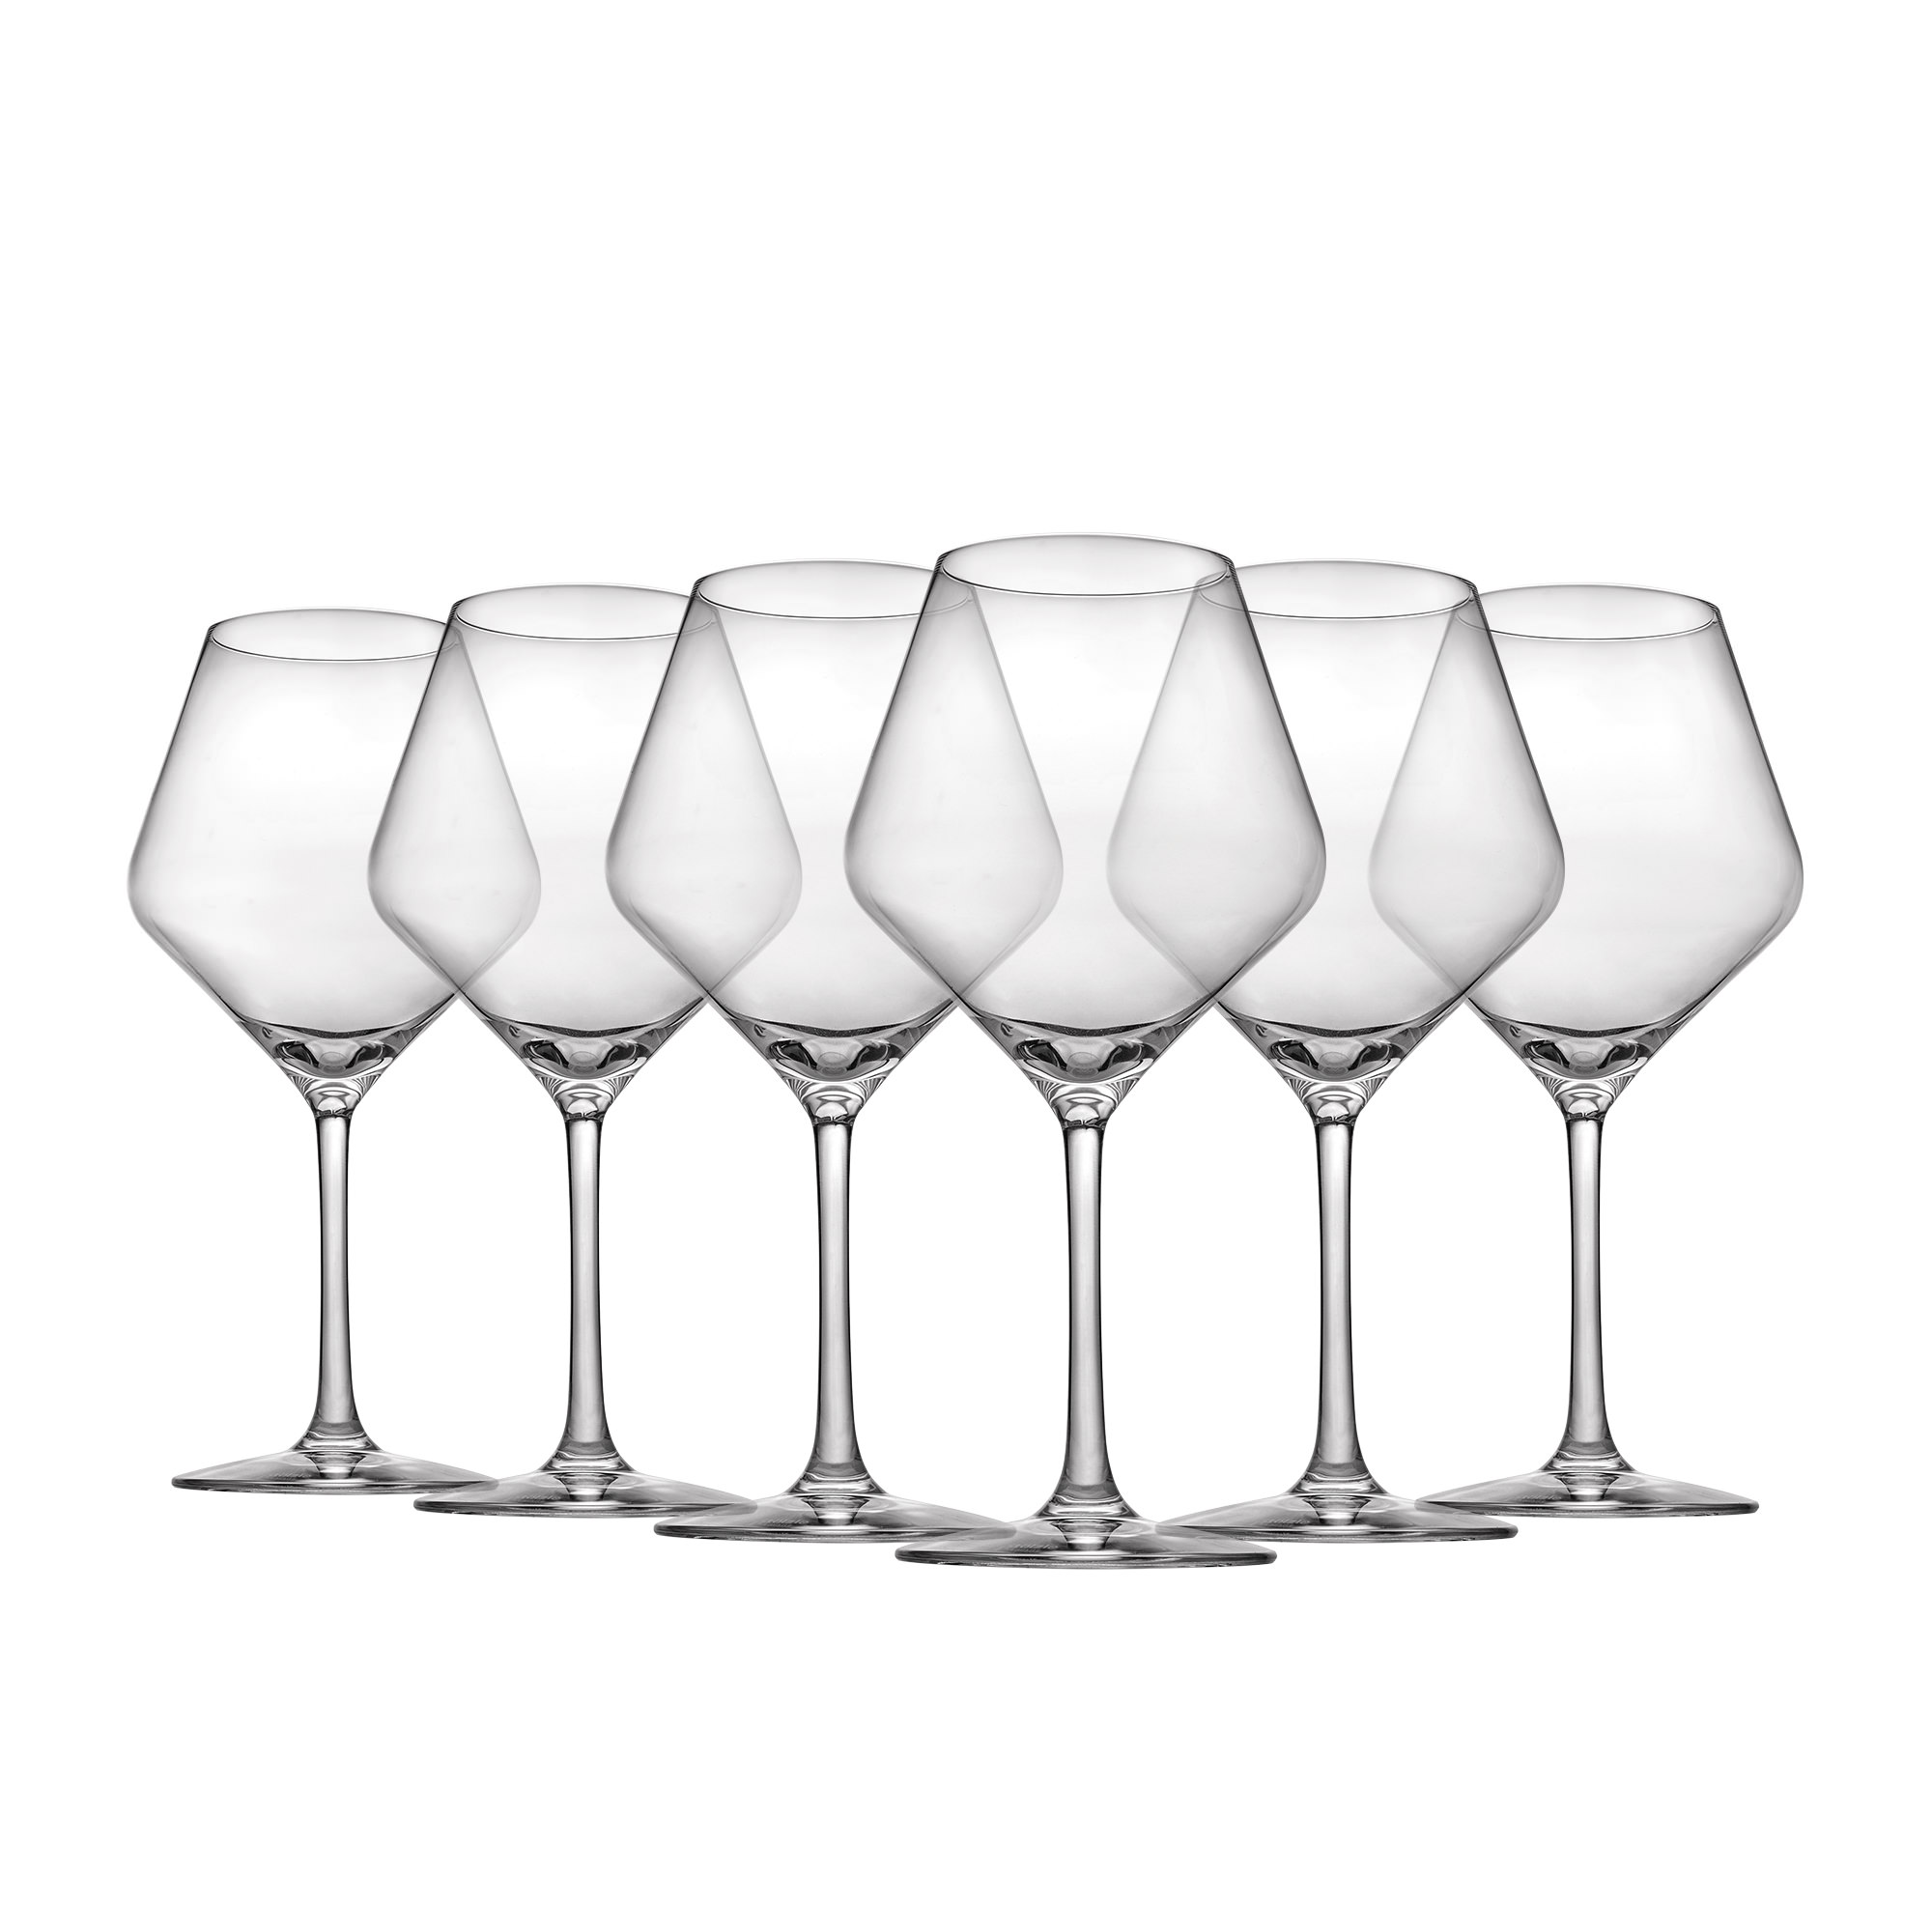 Noritake IVV Tasting Hour 6pc Pinot Glass Set 545ml